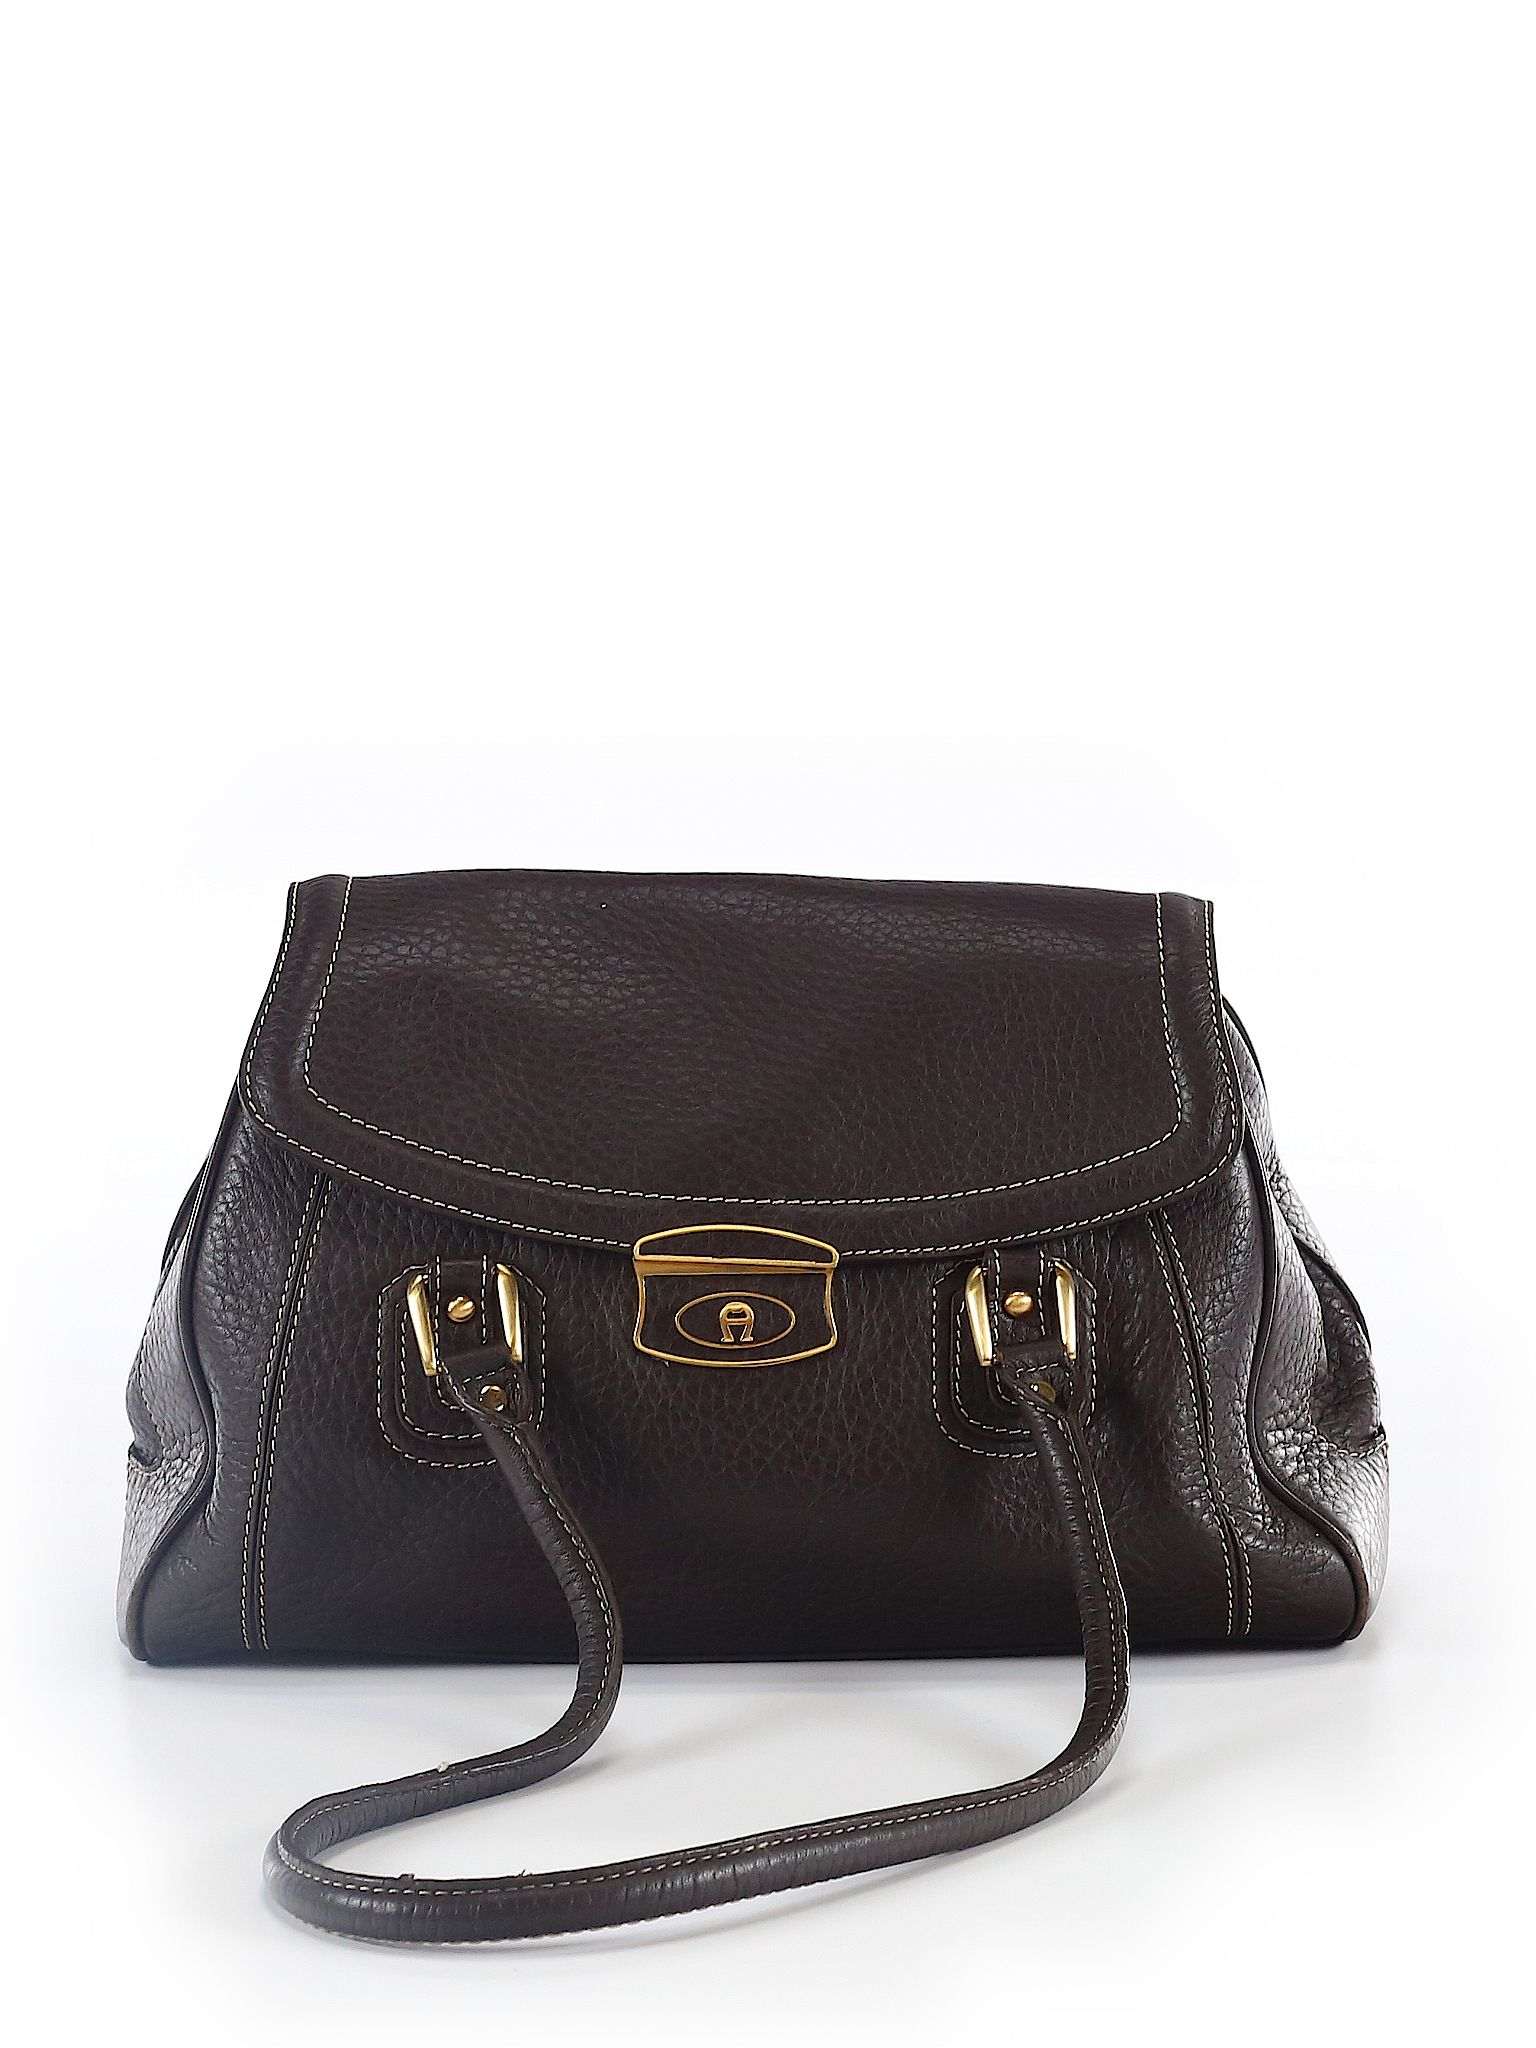 56558e2a95a6 Etienne Aigner Leather Shoulder Bag  Size NA Brown Women s Bags -  59.99